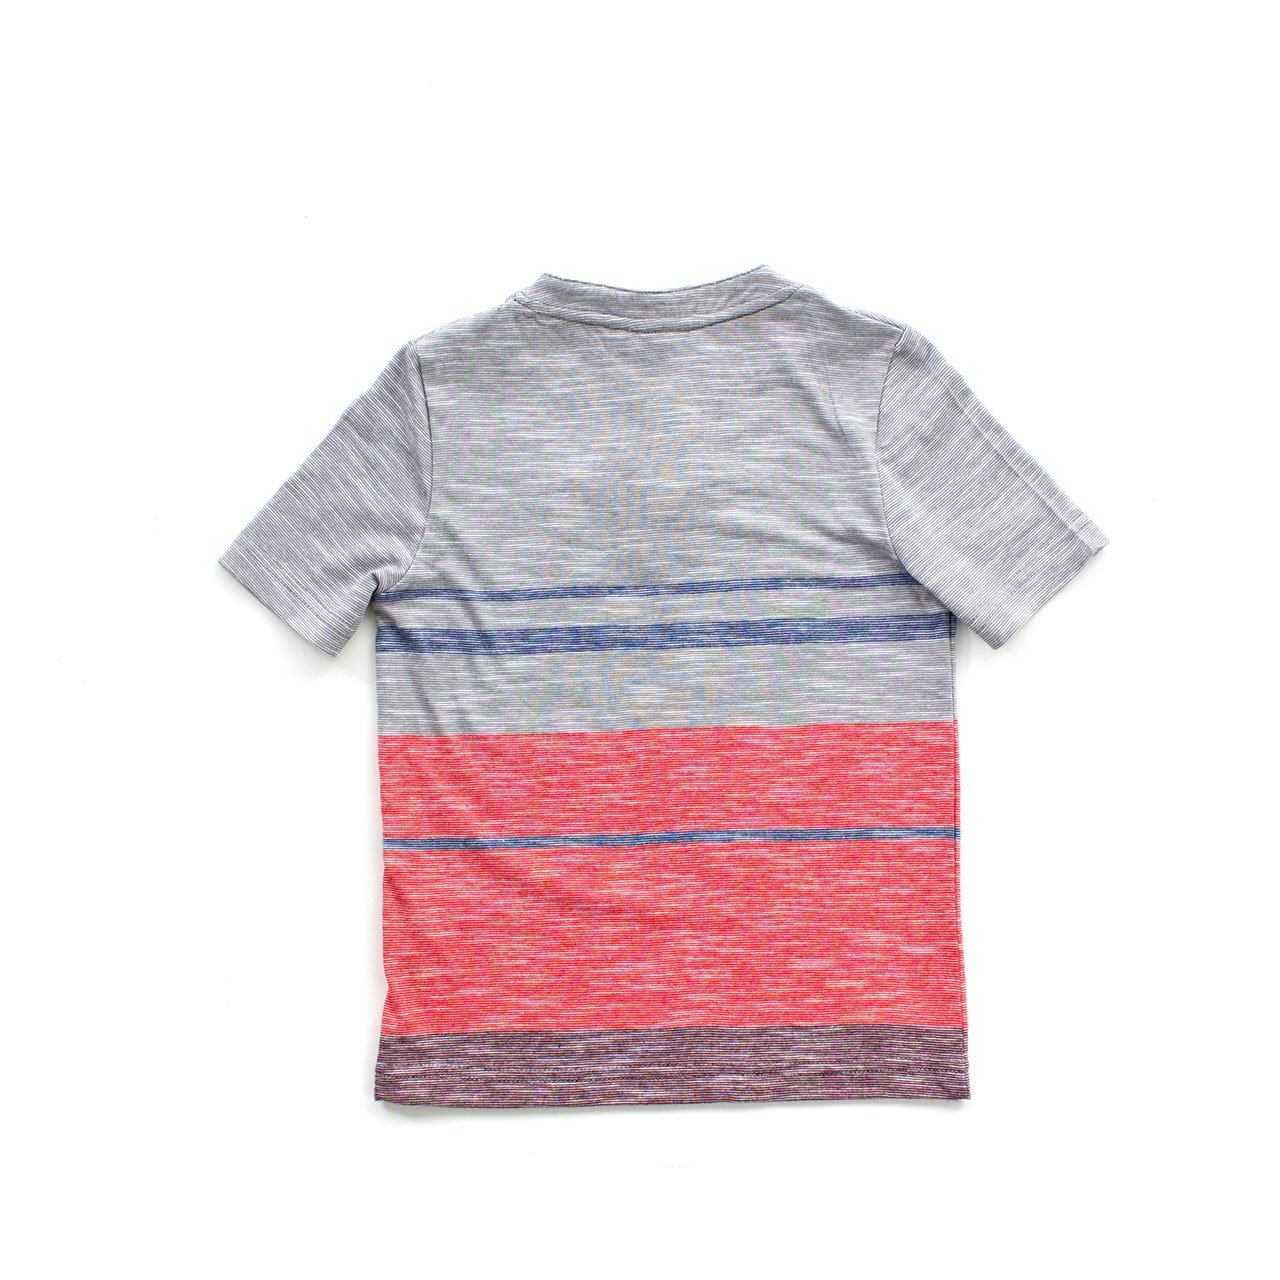 Toddler, Short Sleeve Tee - Devin Tee Toddler